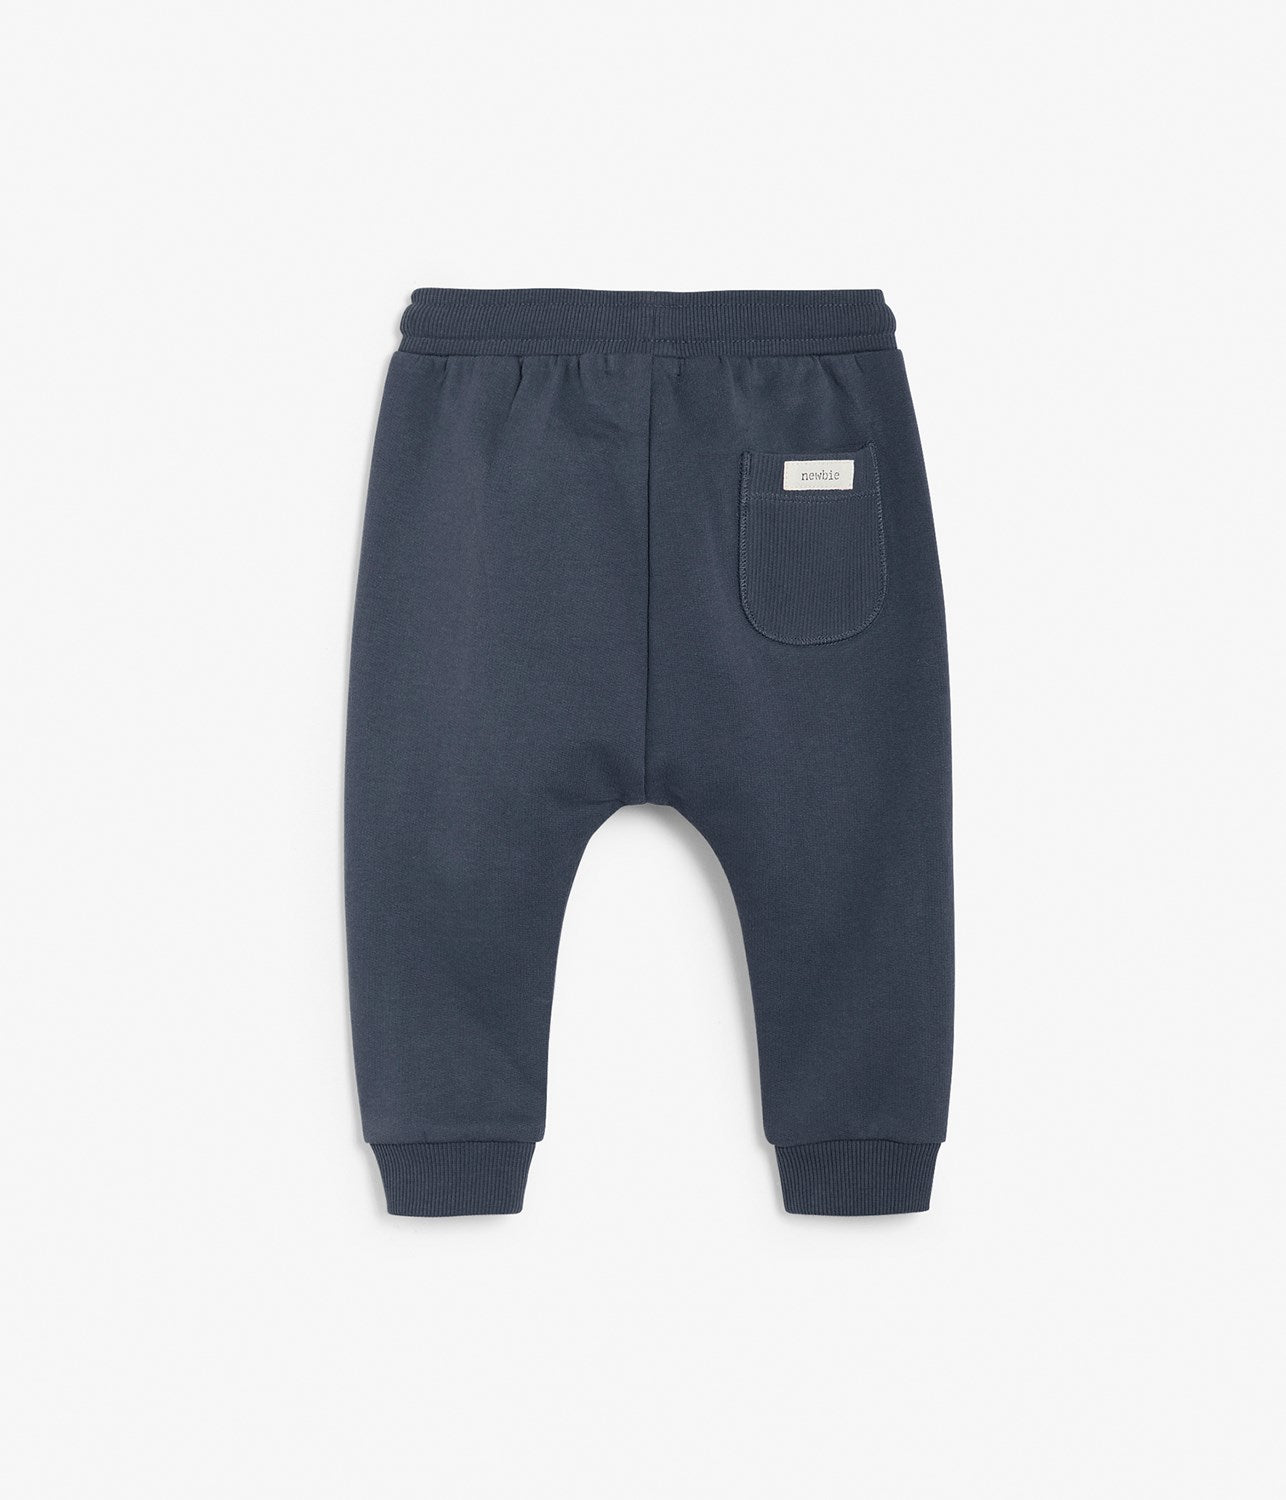 Baby navy drawstring sweatpants